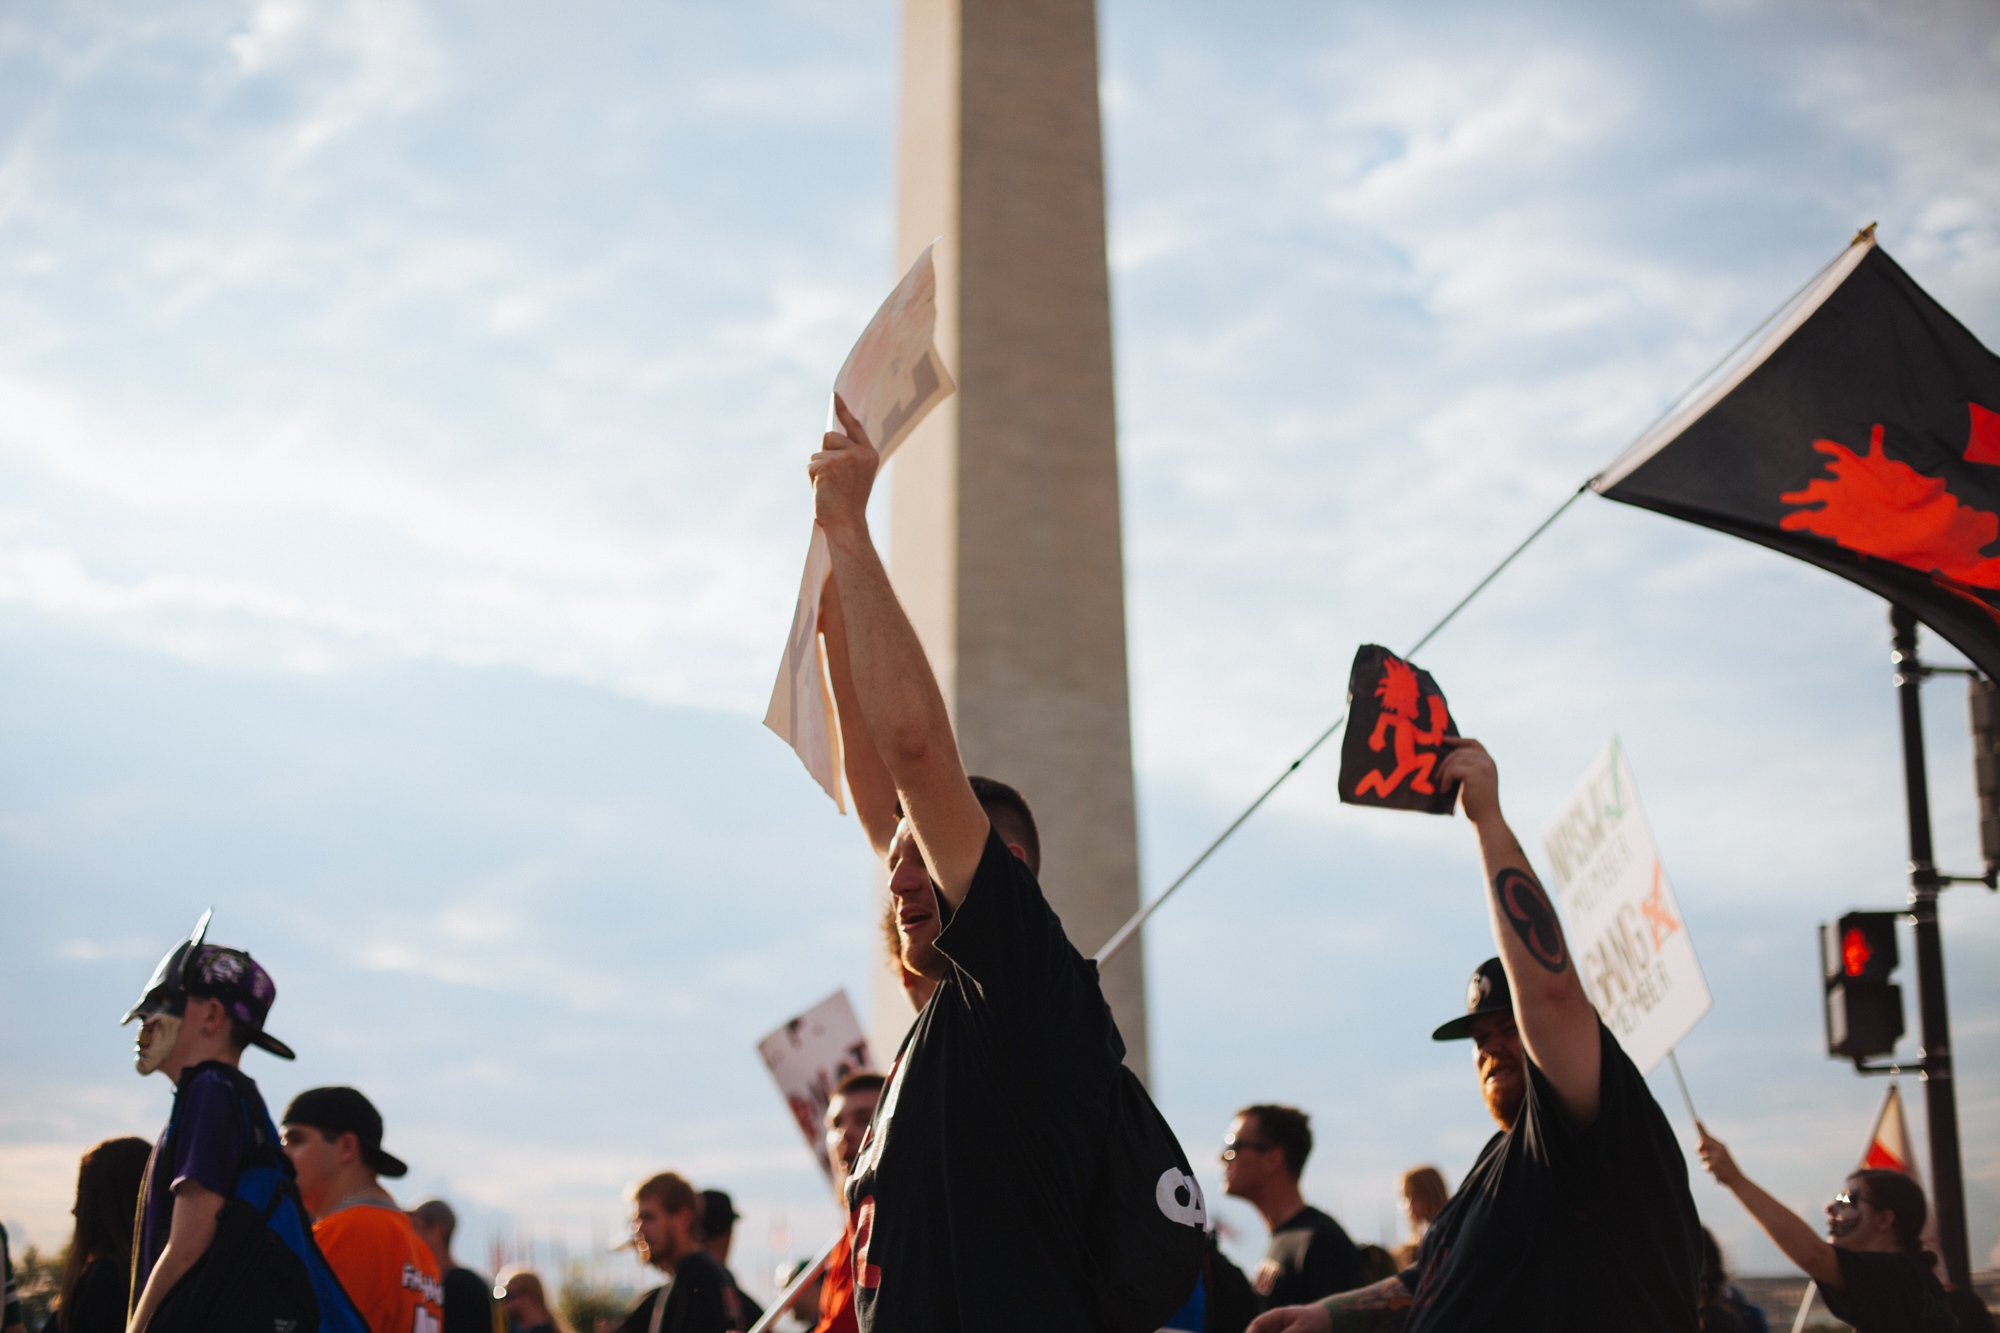 Juggalos and juggalettes march in front of the Washington Monument on 14th Street SW during the Juggalo March demonstration, the march was organized to protest the FBI's classification of Juggalos as a gang, National Mall, Washington, D.C., U.S. September 16, 2017.